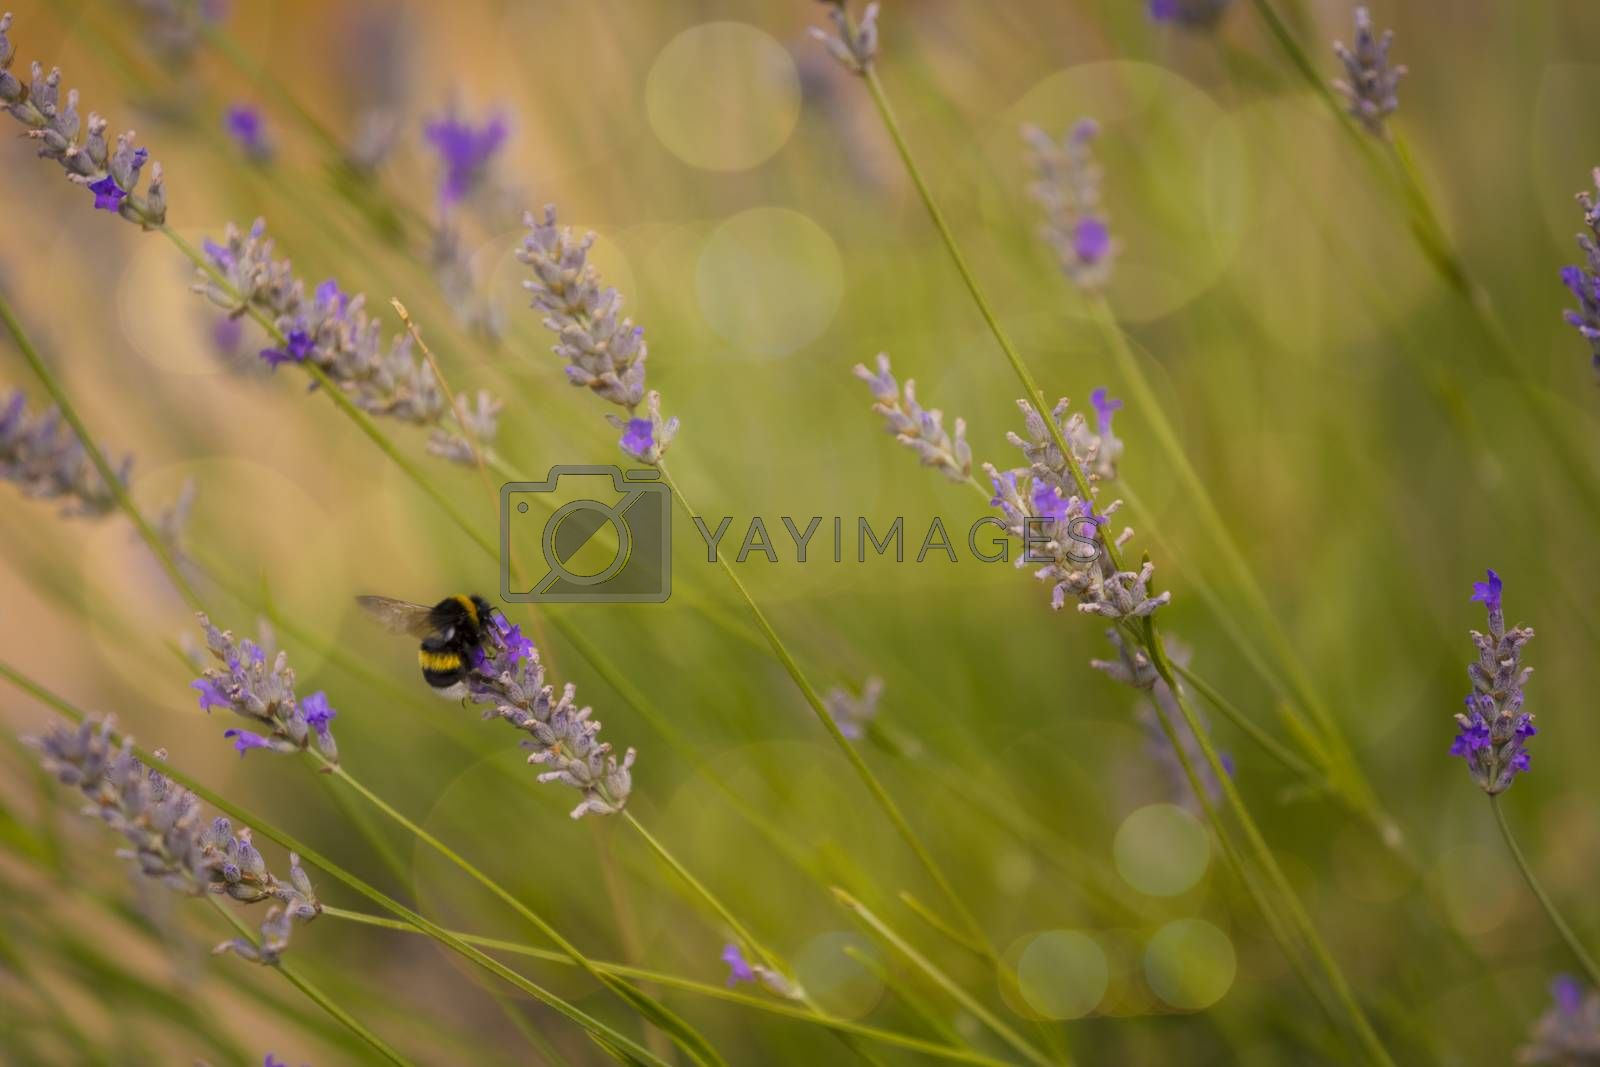 Bumblee in a field of lavender in the summer.